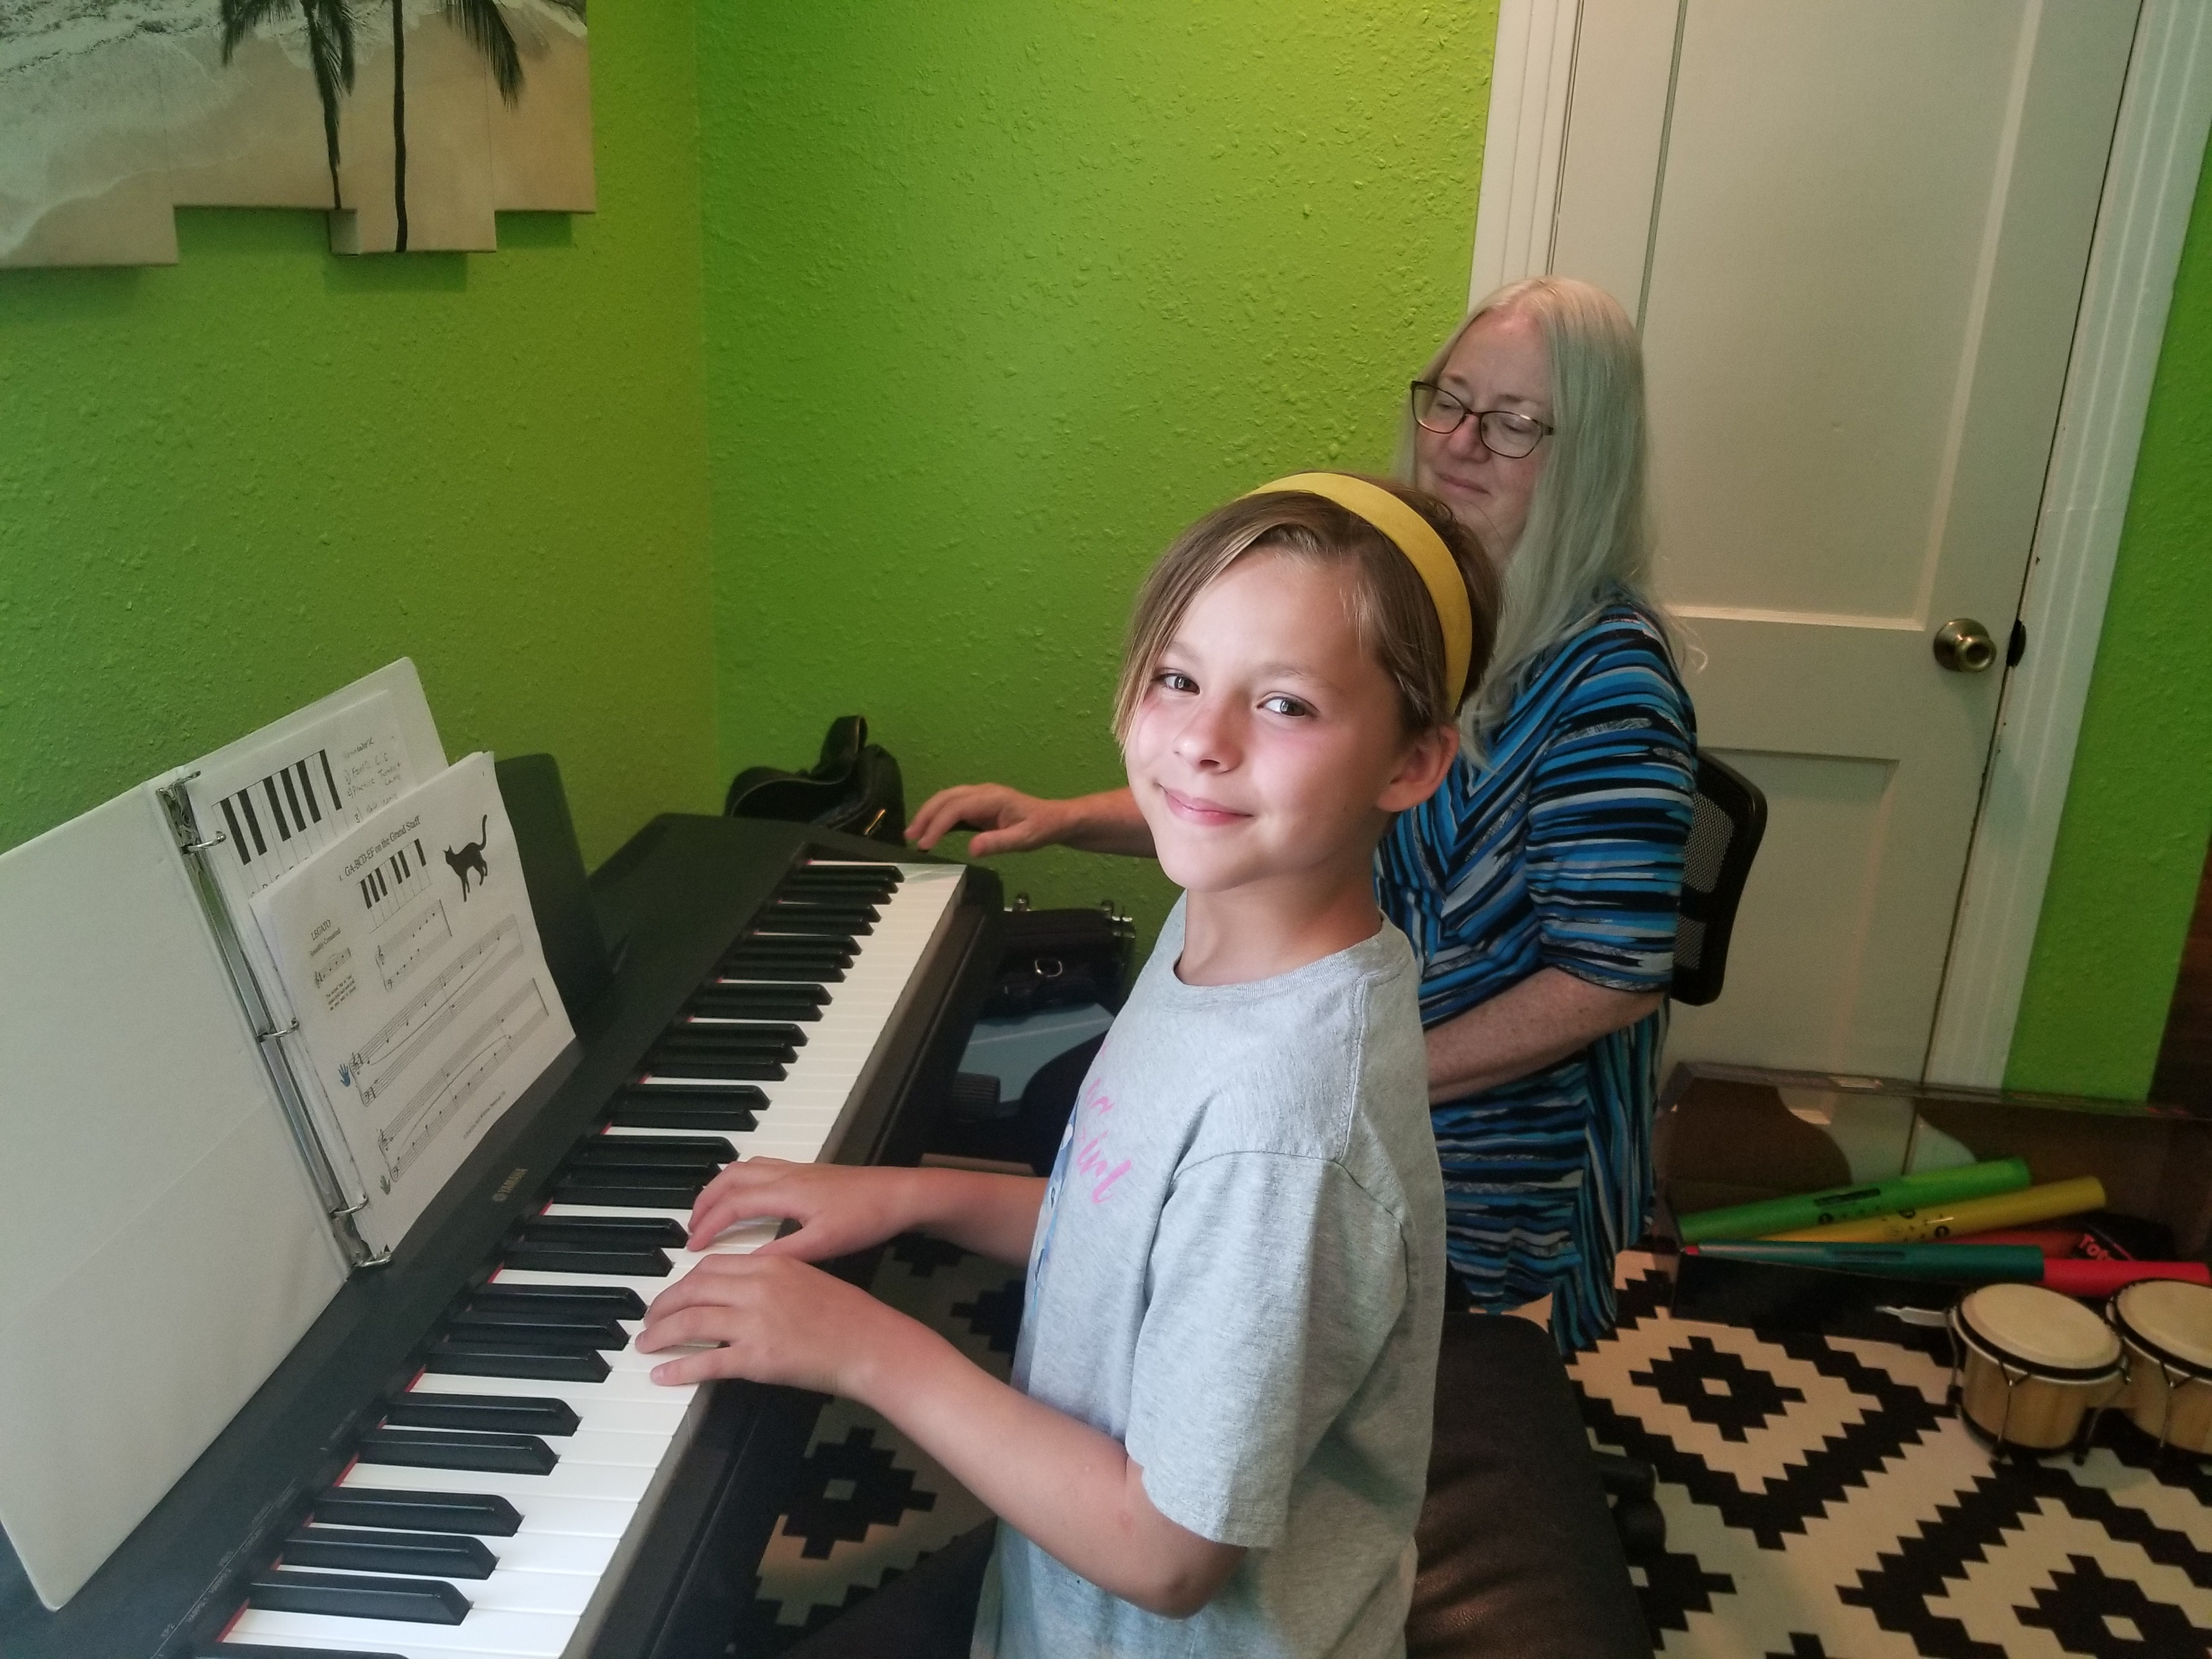 Taking Piano lessons is so much fun at WMA!